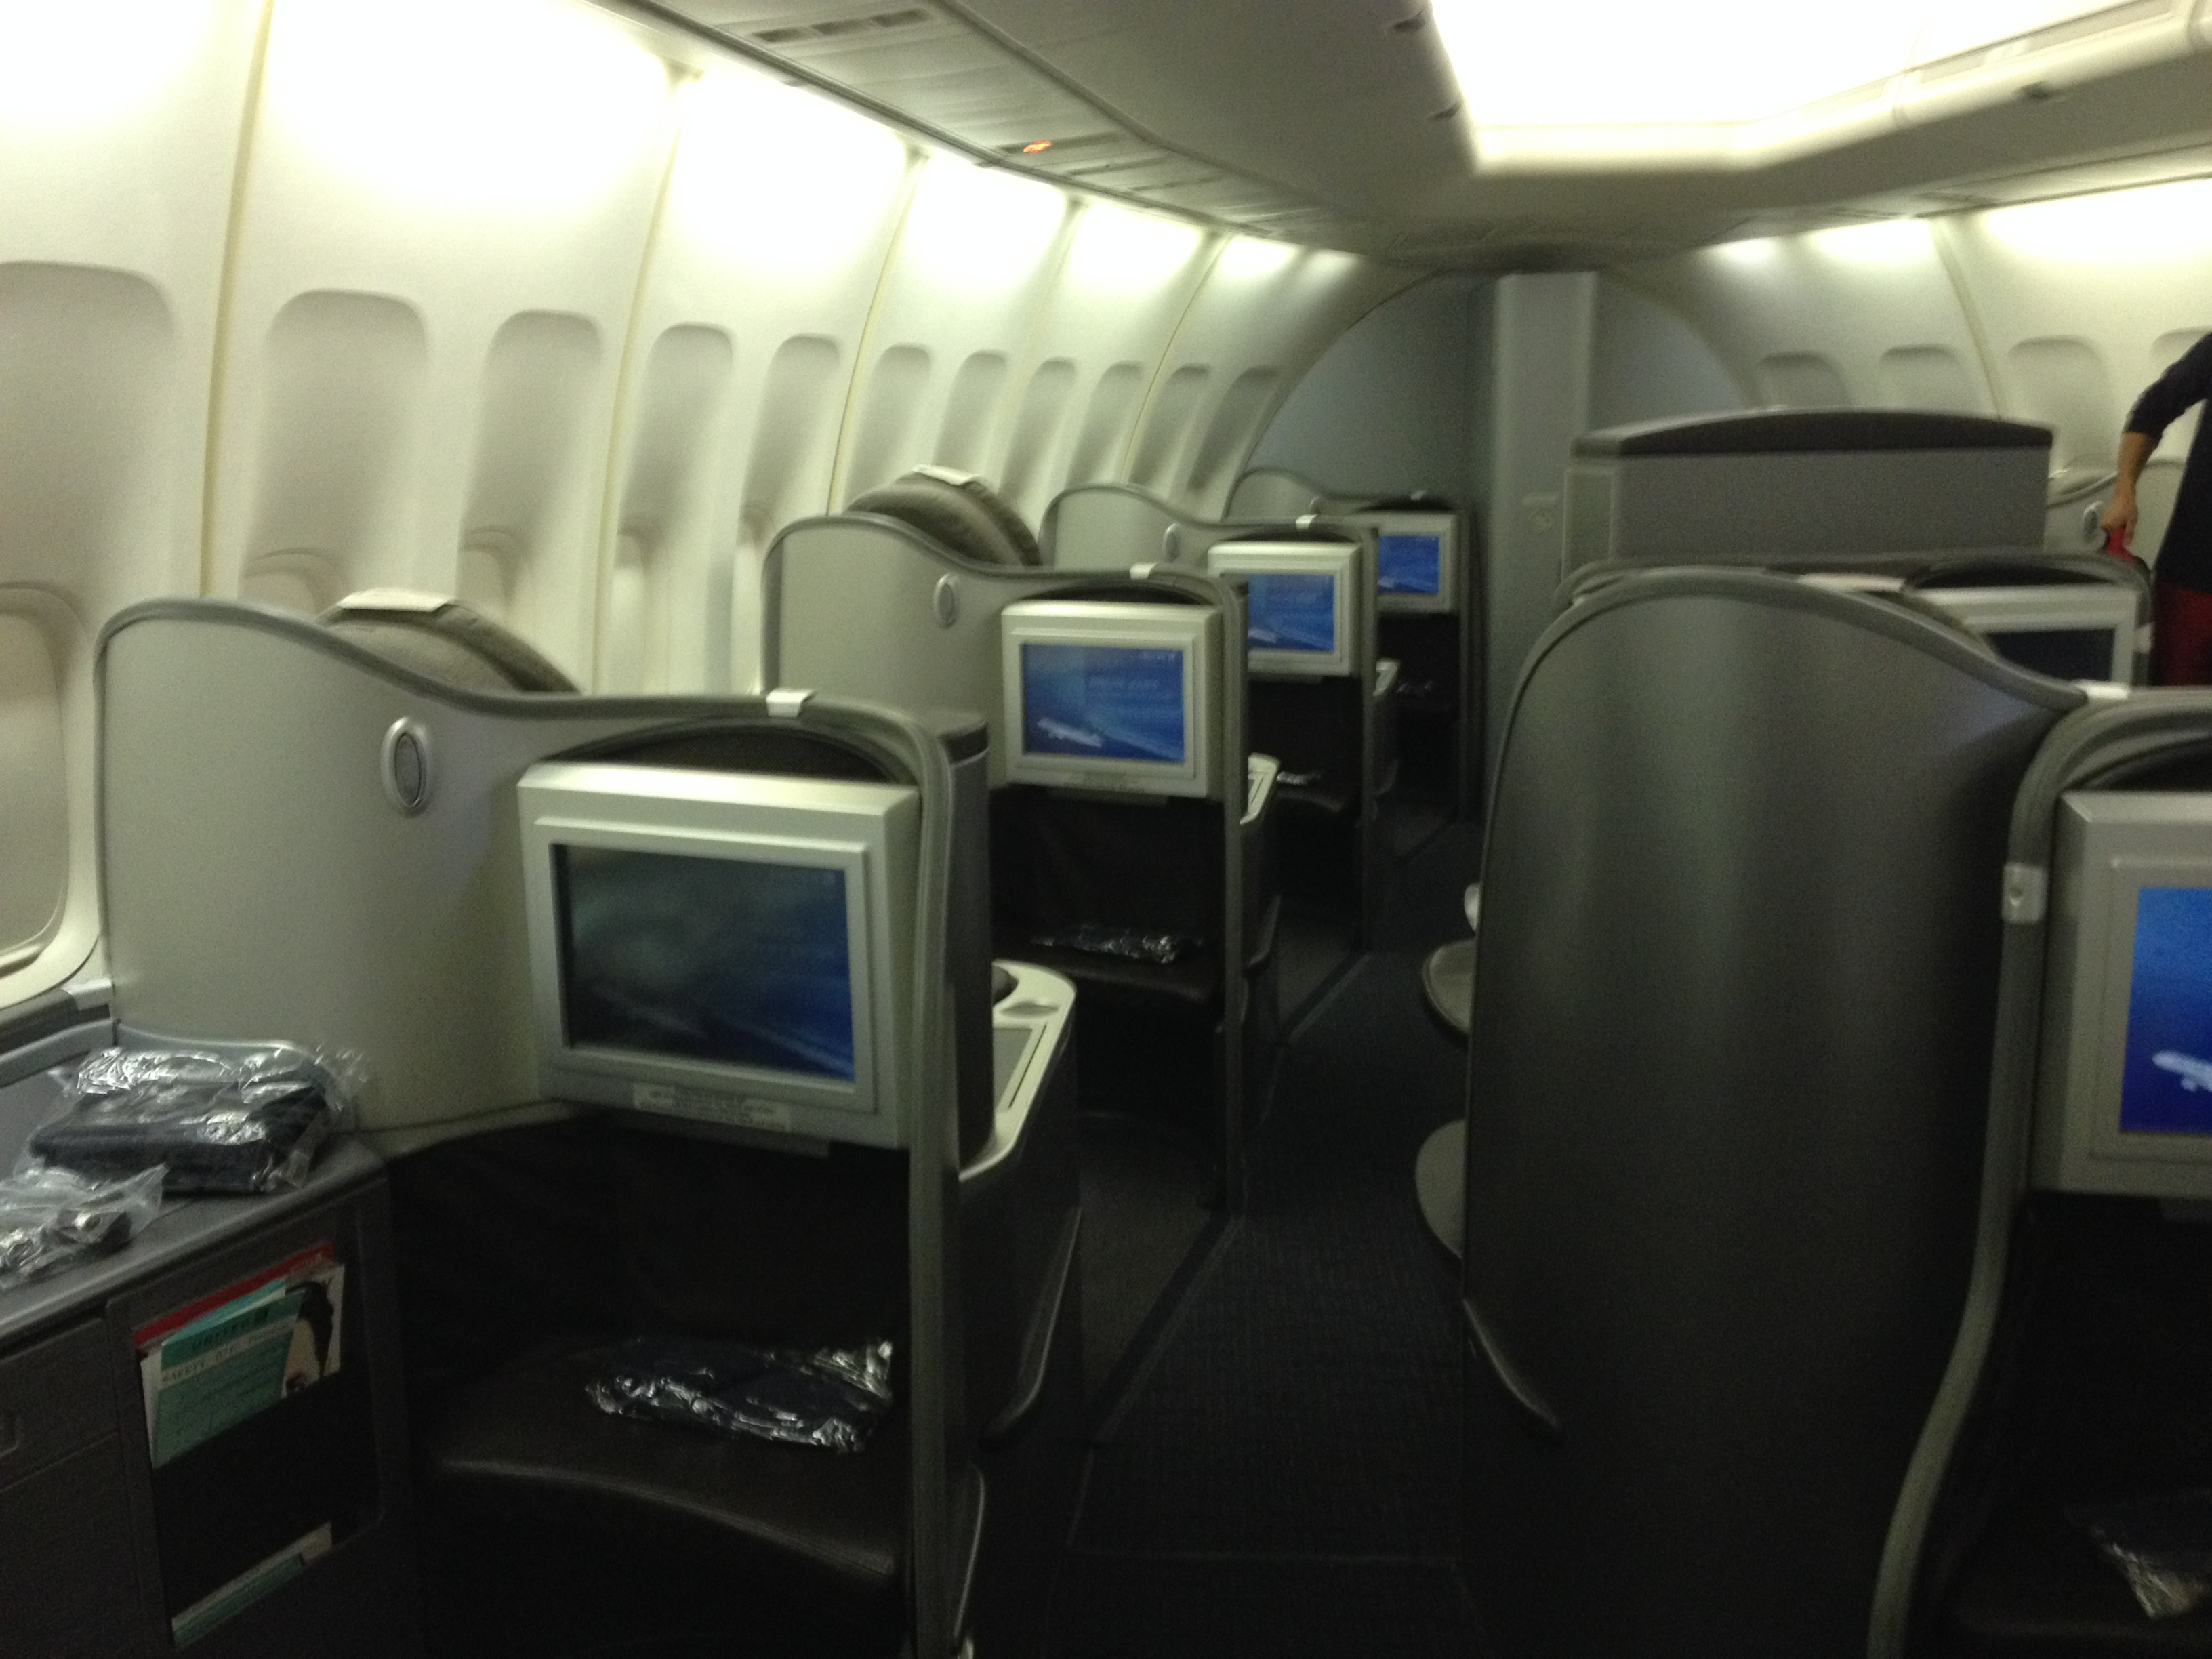 United Airlines First Class Cabin 747 Honolulu Tokyo